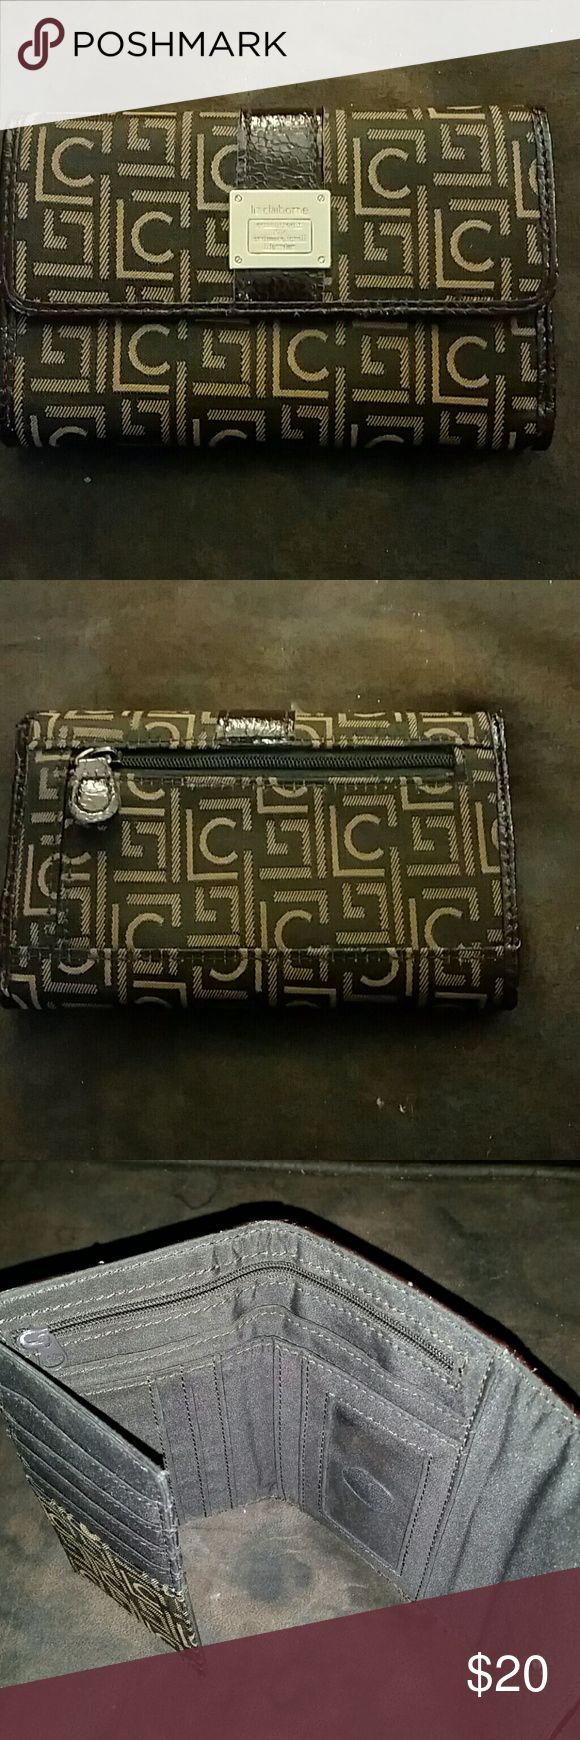 LIZ CLAIBORNE wallet GUC Liz Claiborne wallet. Offers welcome. Liz Claiborne Bags Wallets